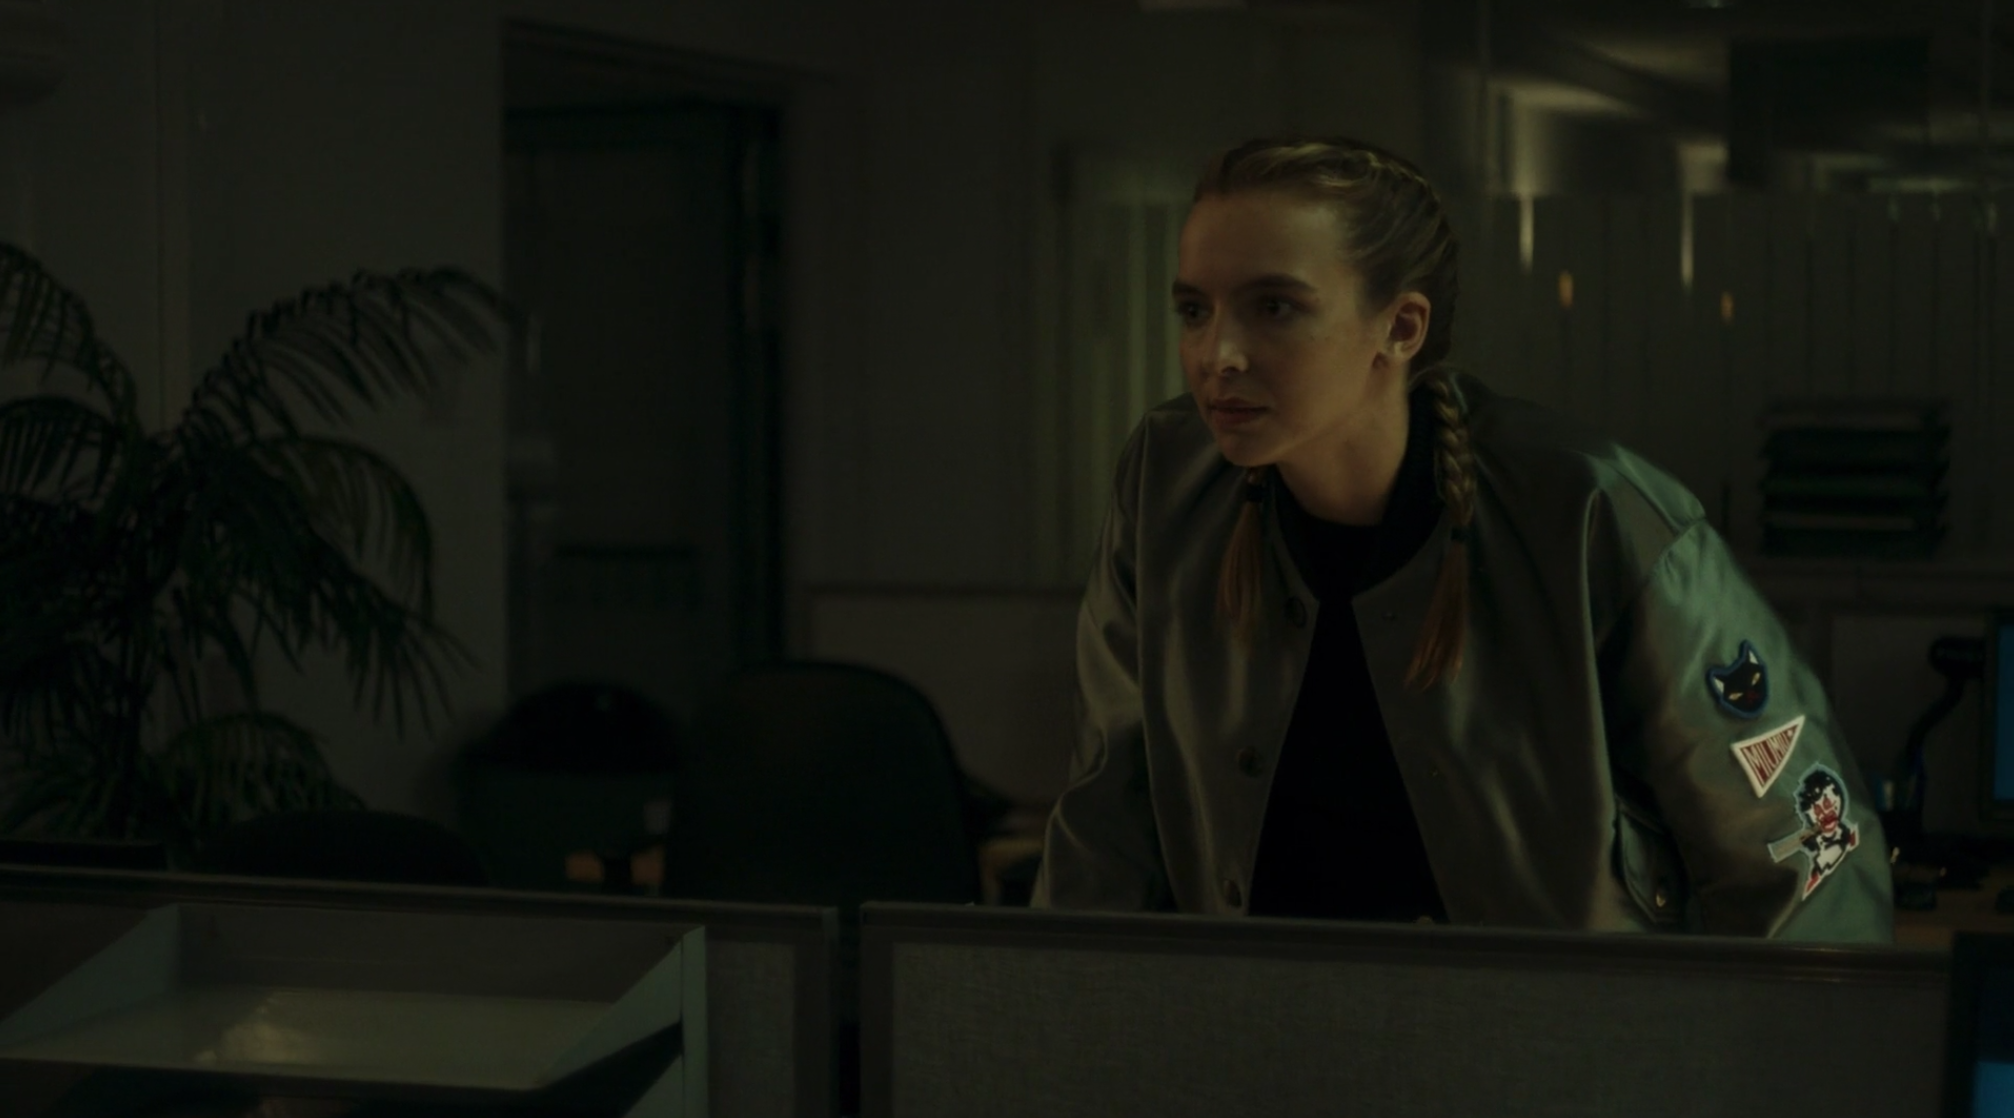 Villanelle-Miu-Miu-Bomber-Jacket-Killing-Eve